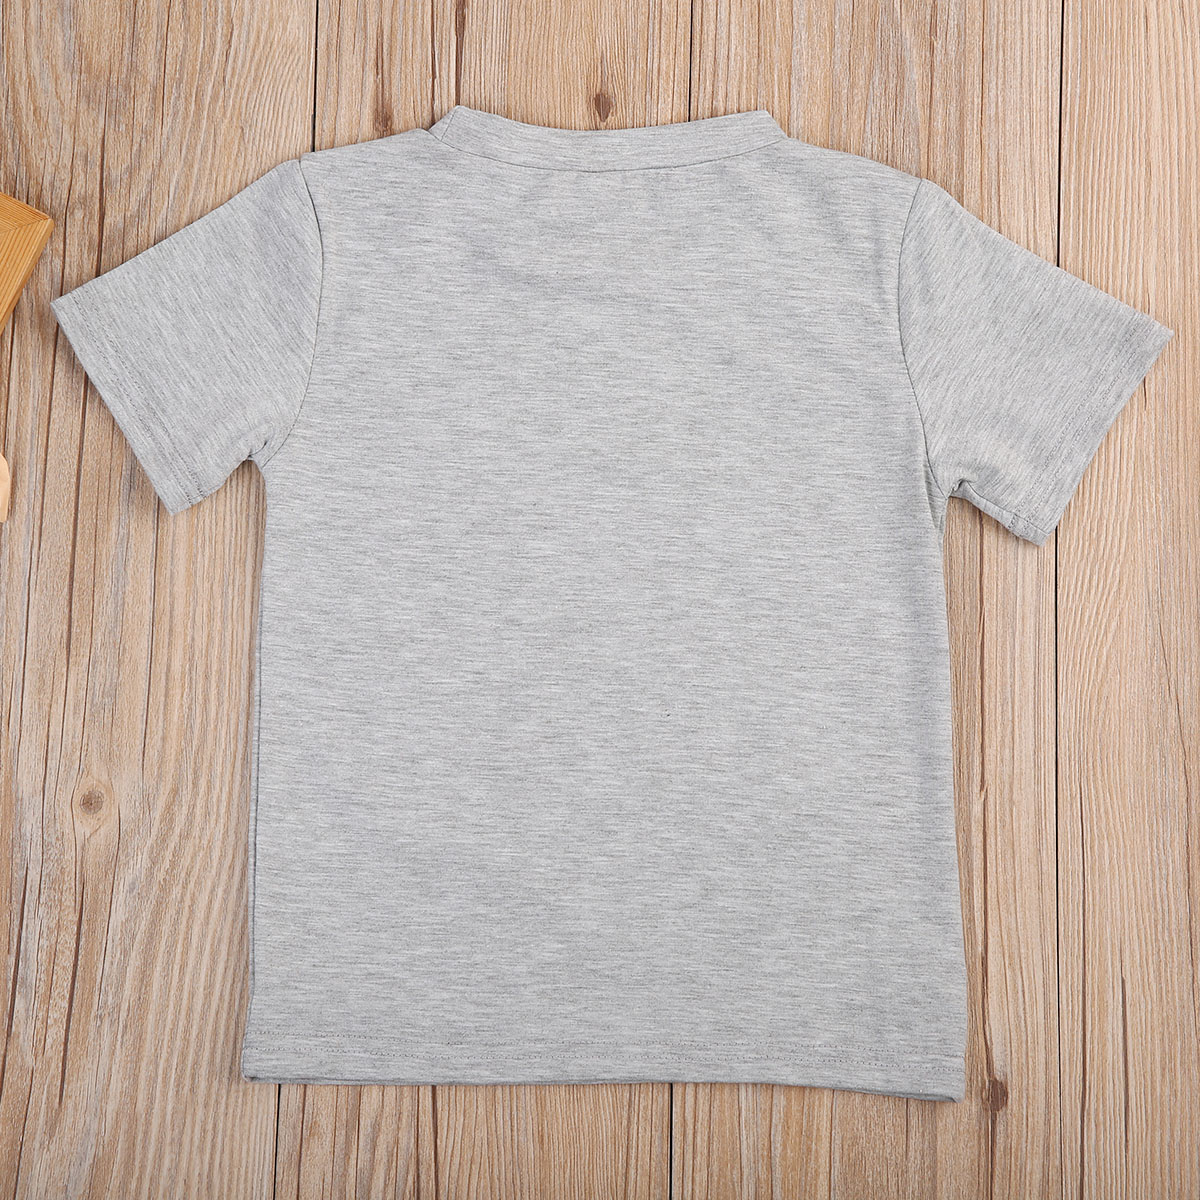 Newborn-Baby-Boys-Kids-Clothing-Top-T-Shirt-Short-Sleeve-Cotton-Letter-Outfit-Clothes-Tops-Boy-5